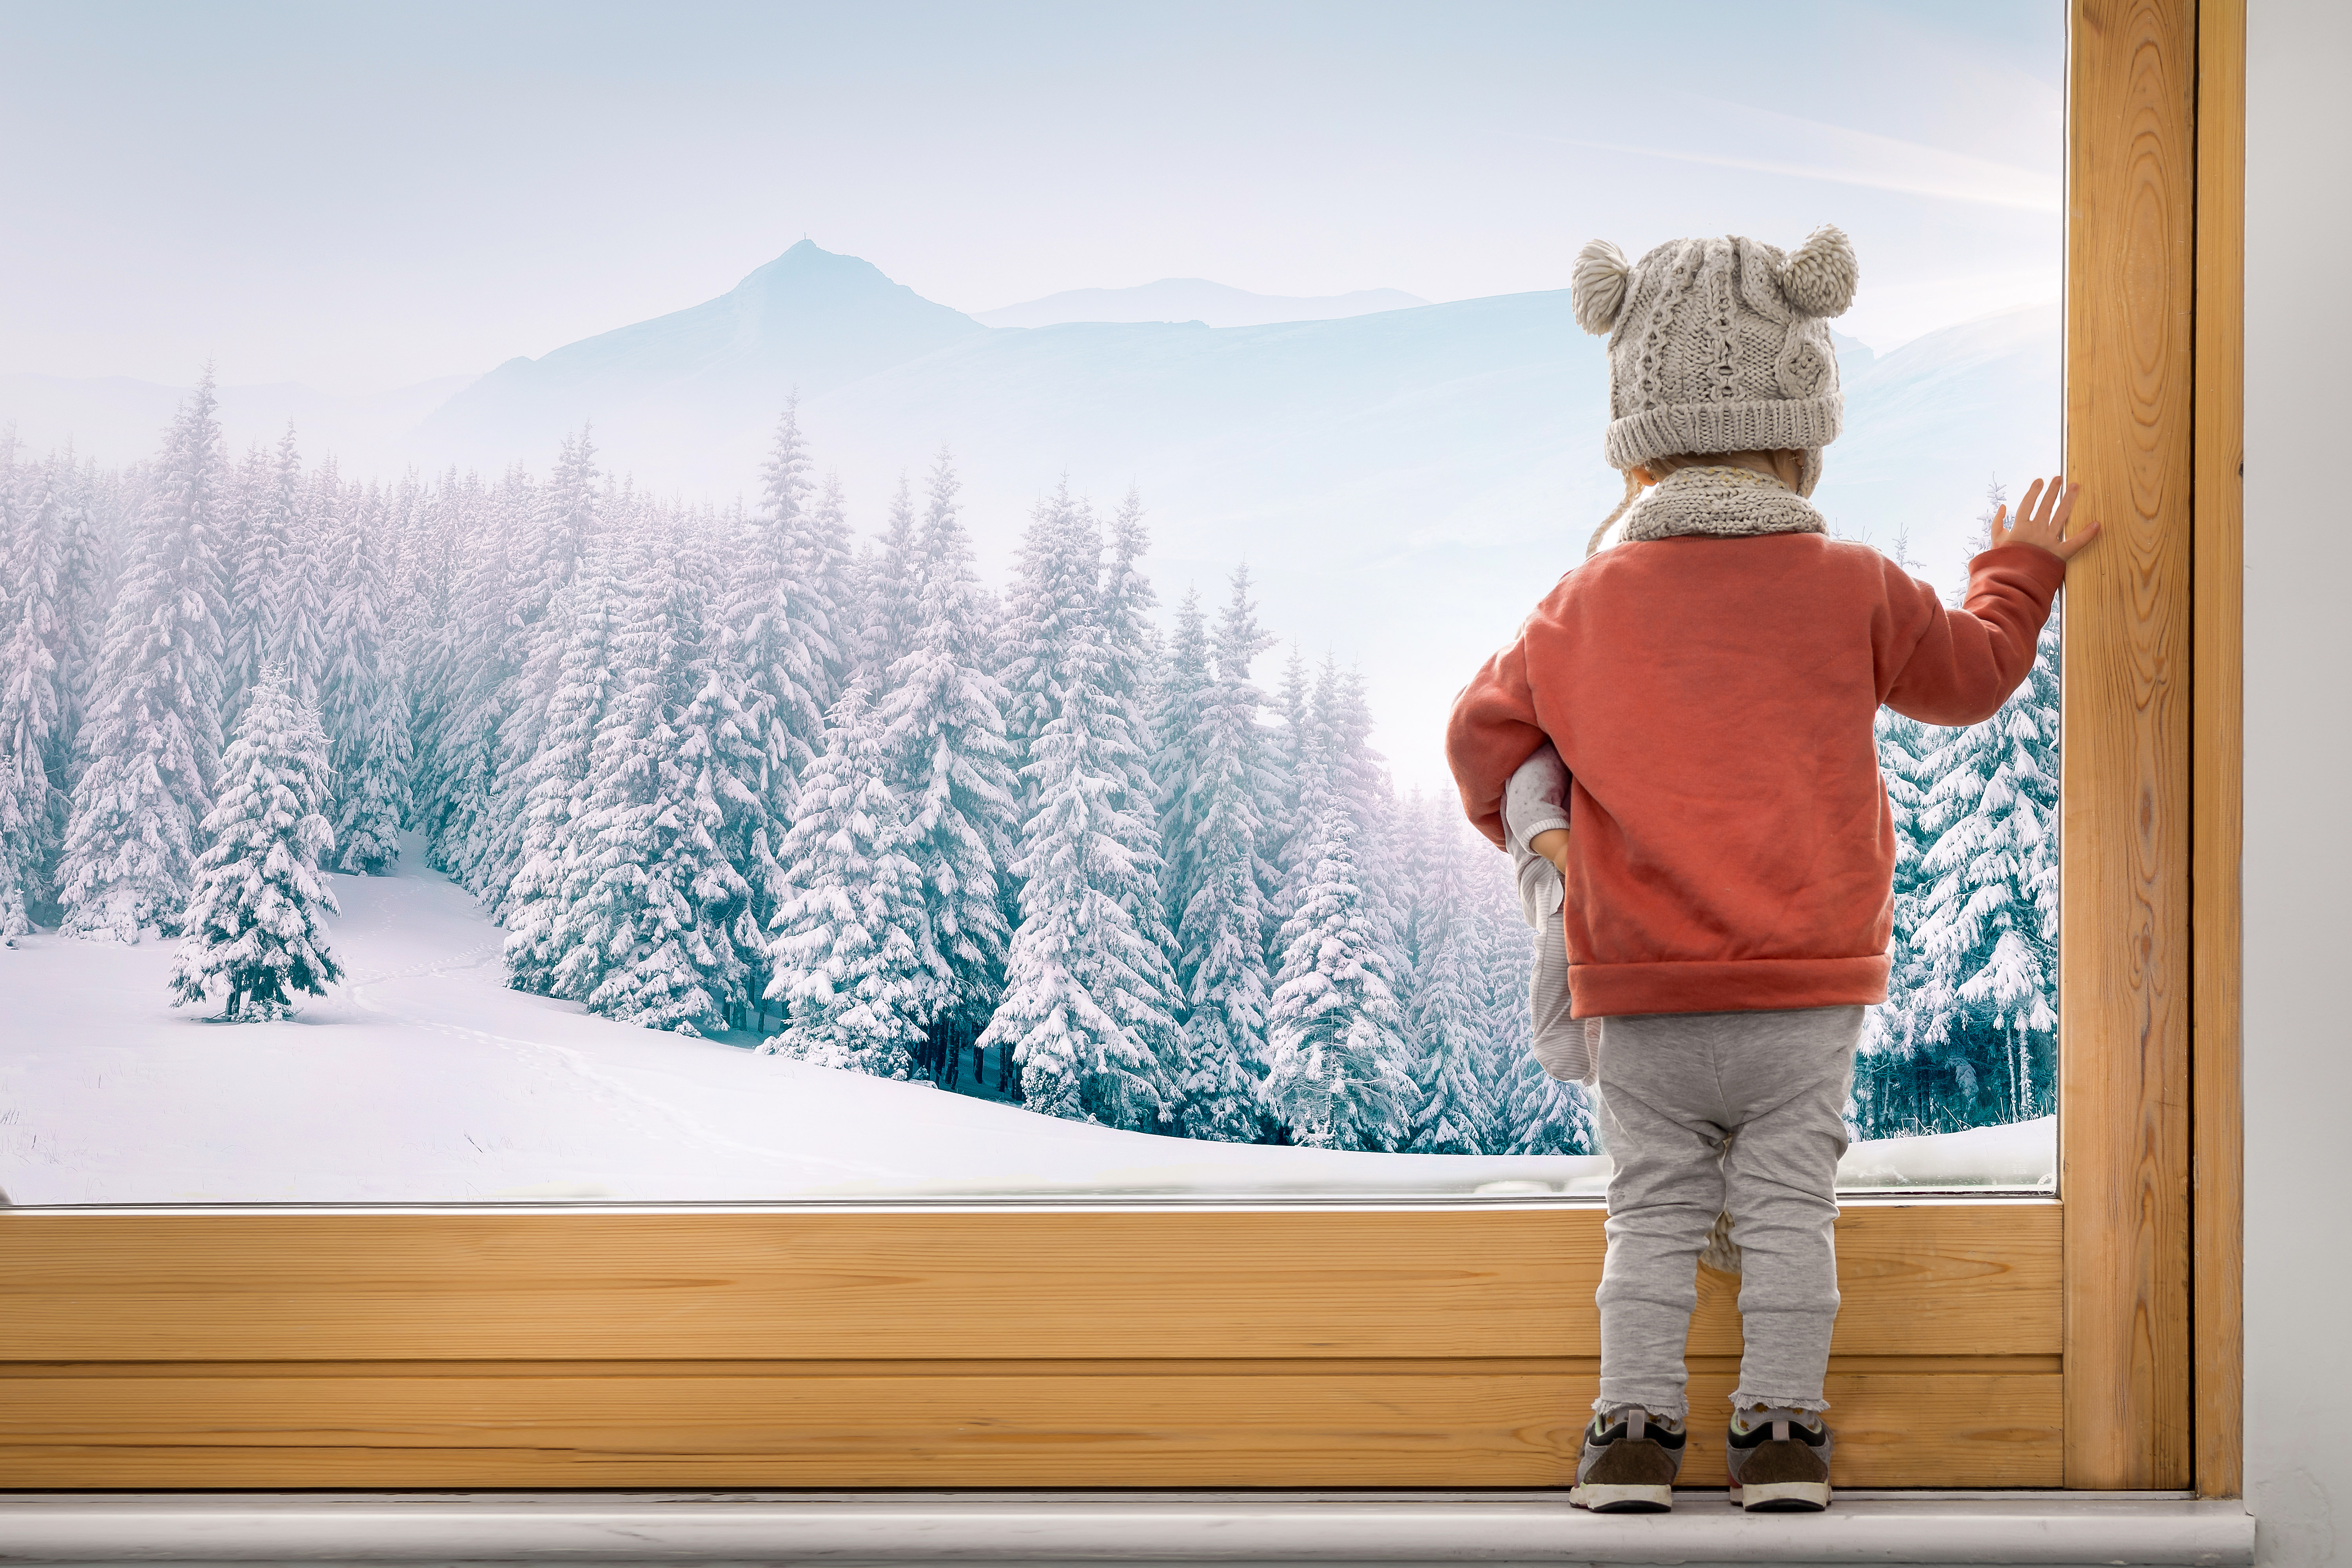 Toddler looks out window on to snowy winter scene